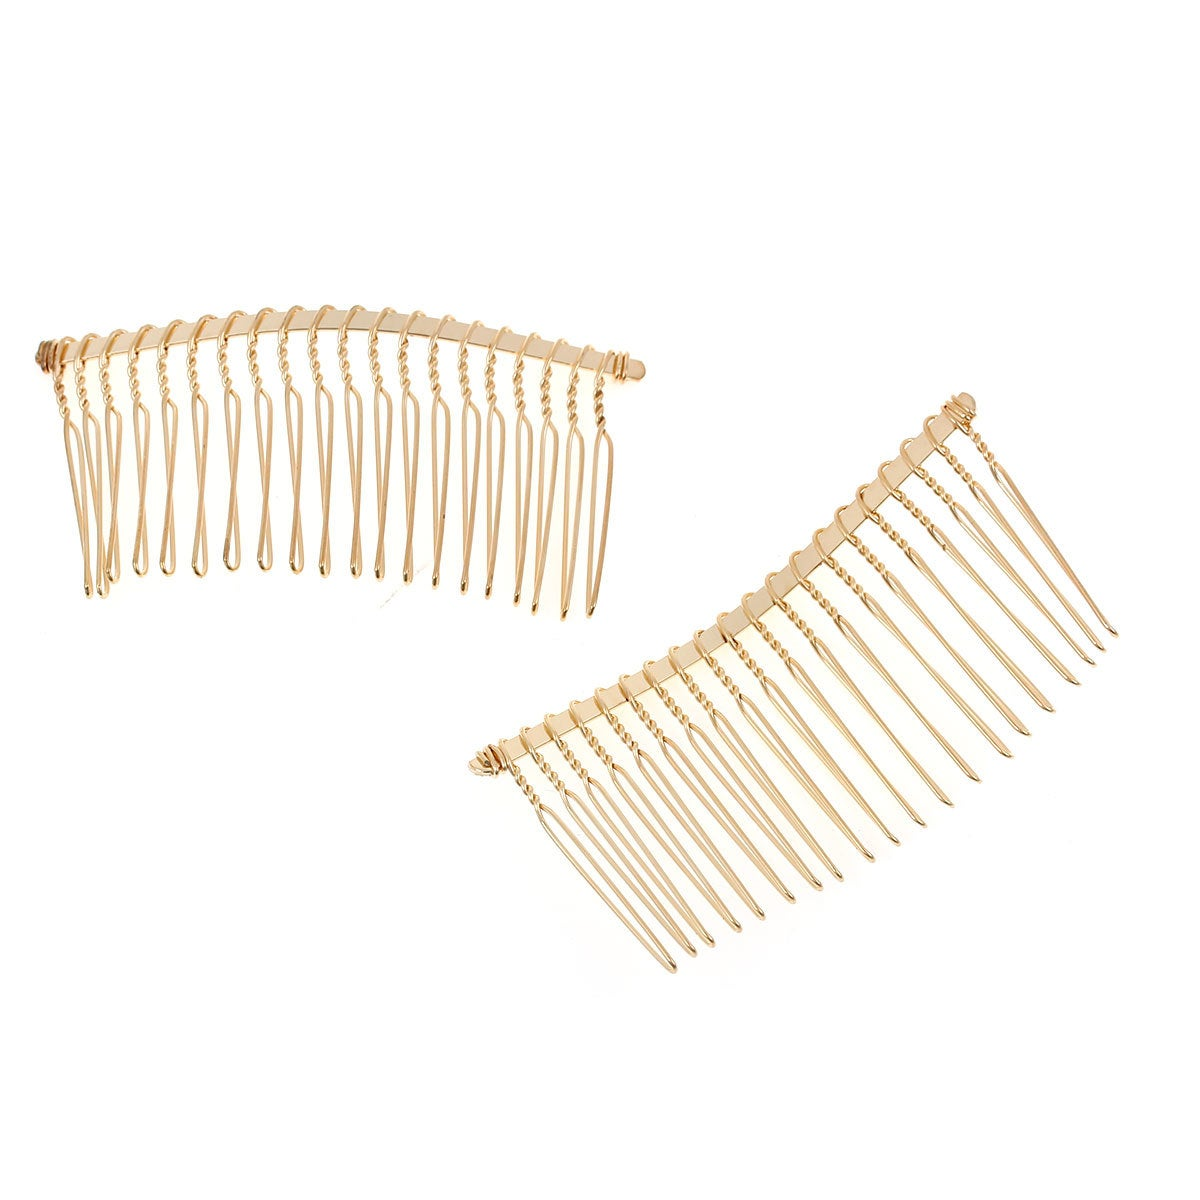 5 Gold Plated Hair Combs - Nickel Free - Lead Free - Wedding Bridal Comb - 78mm x 38mm (3 inch x 1.5 inch)